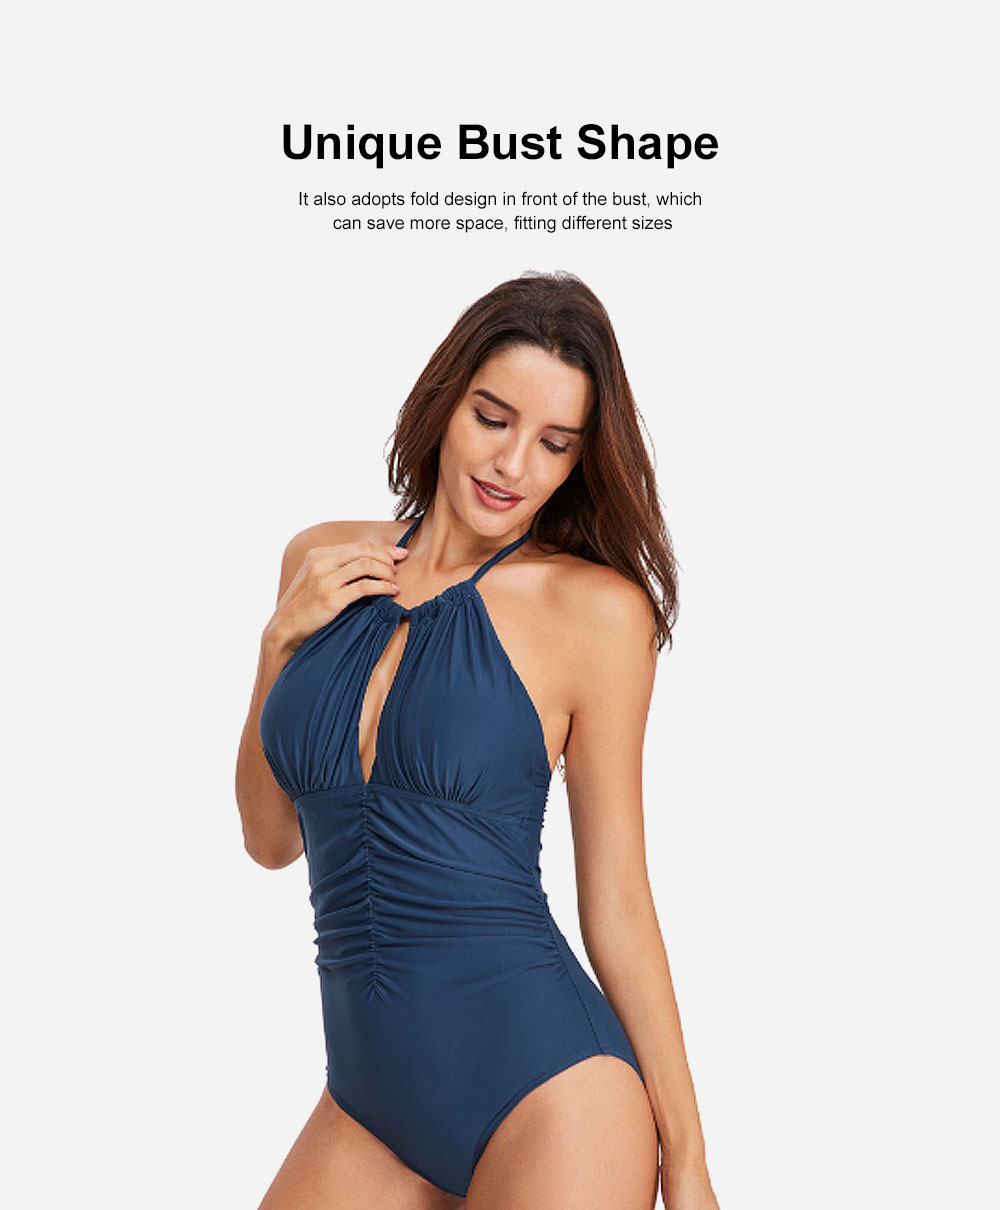 Women One-Piece Bikini with Shoulder Bandage, Solid Color Slim Sexy Swimsuit with Fold Design 2